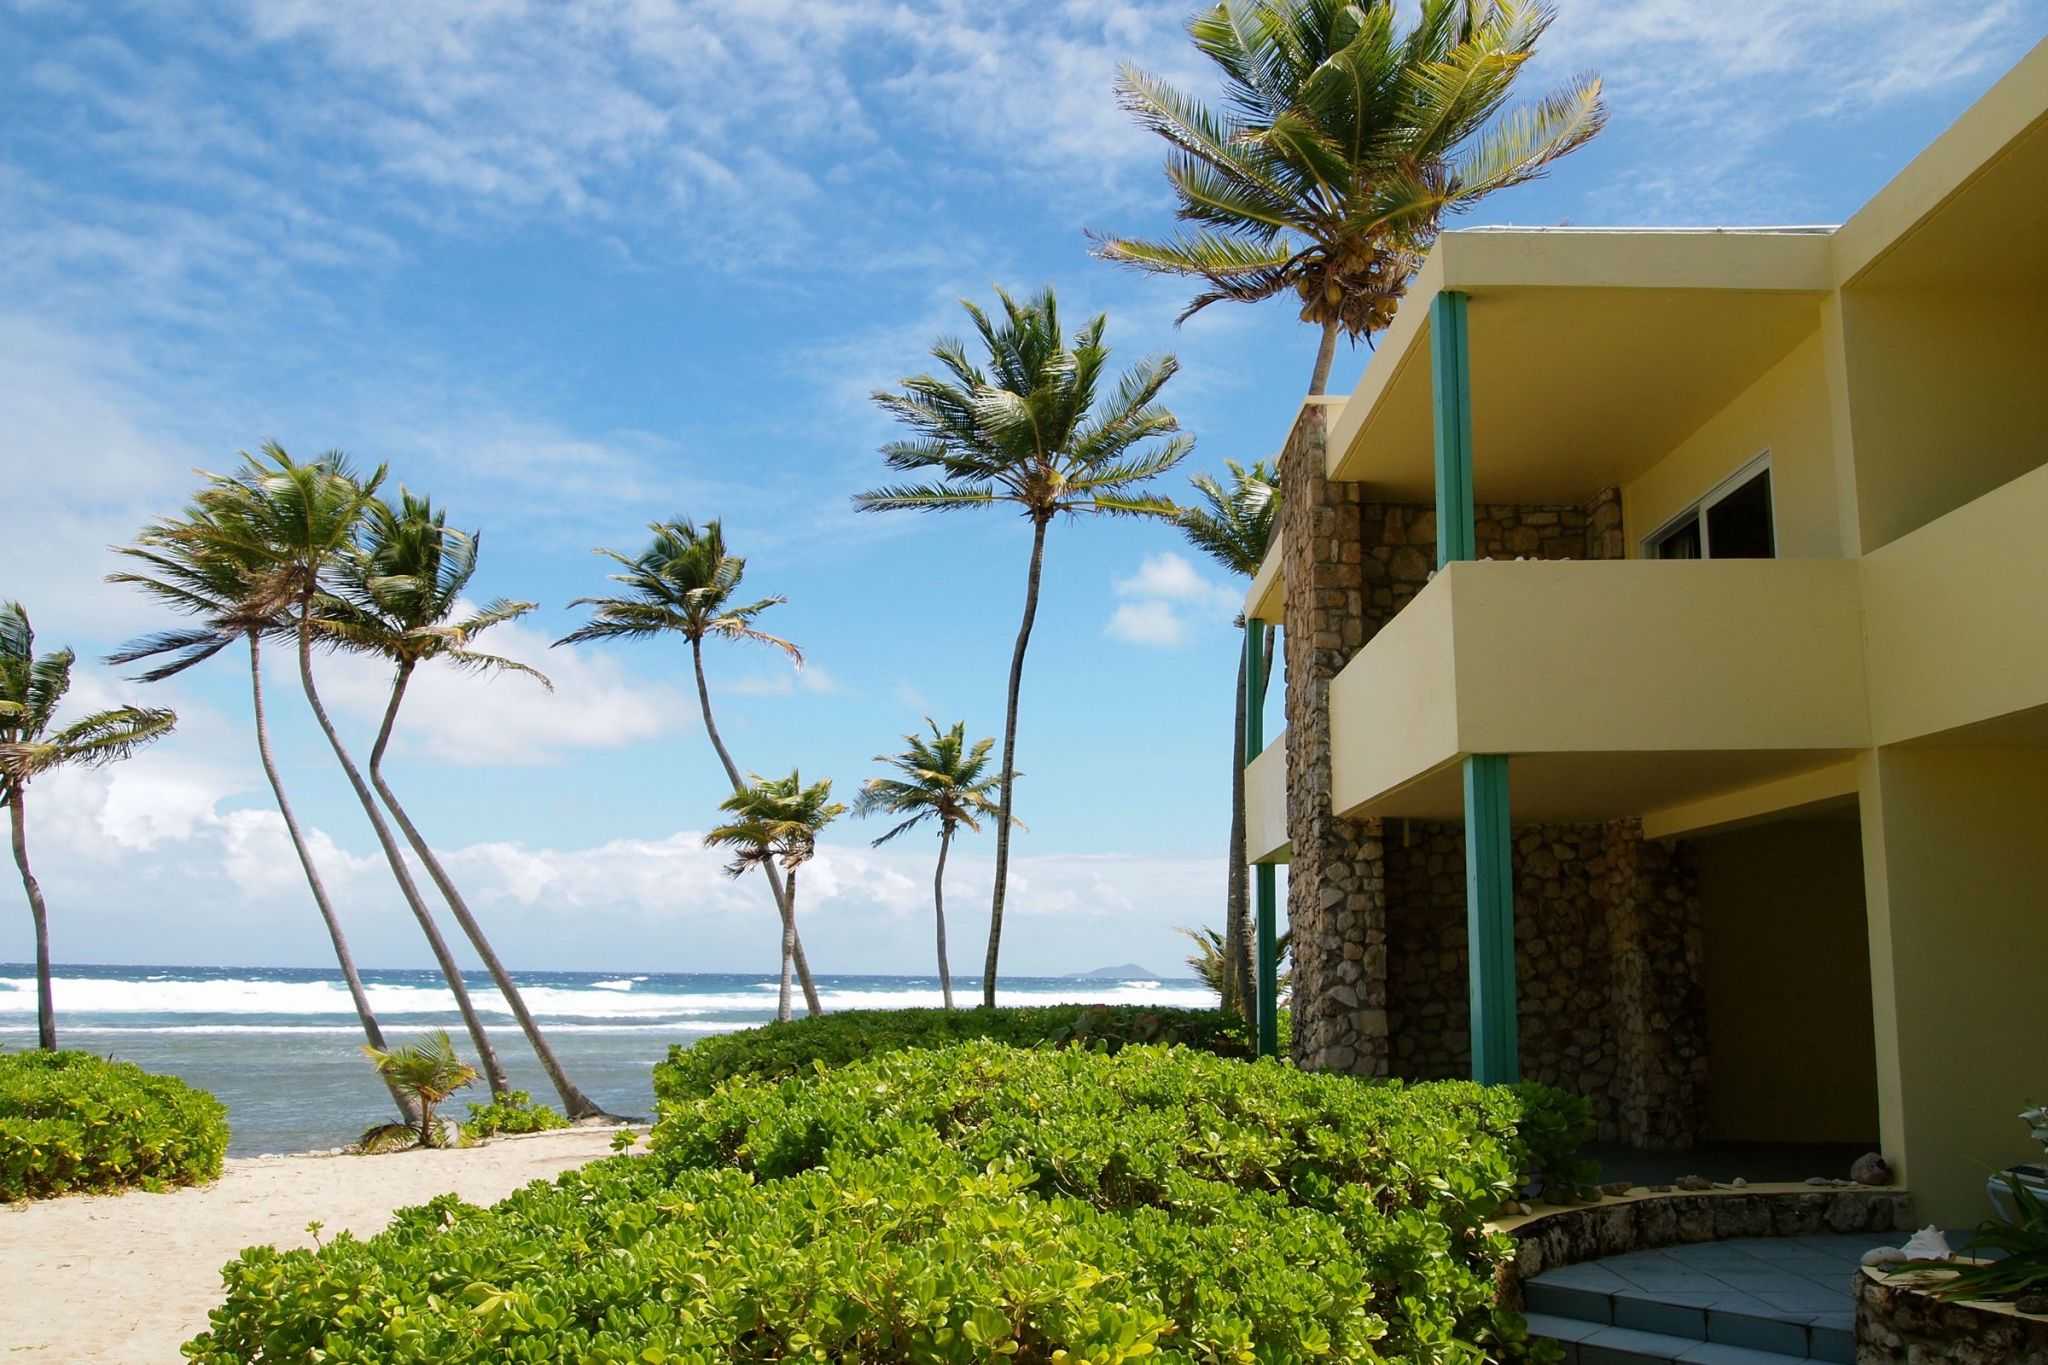 Save BIG ($2,500) on St. Croix – Today Only!